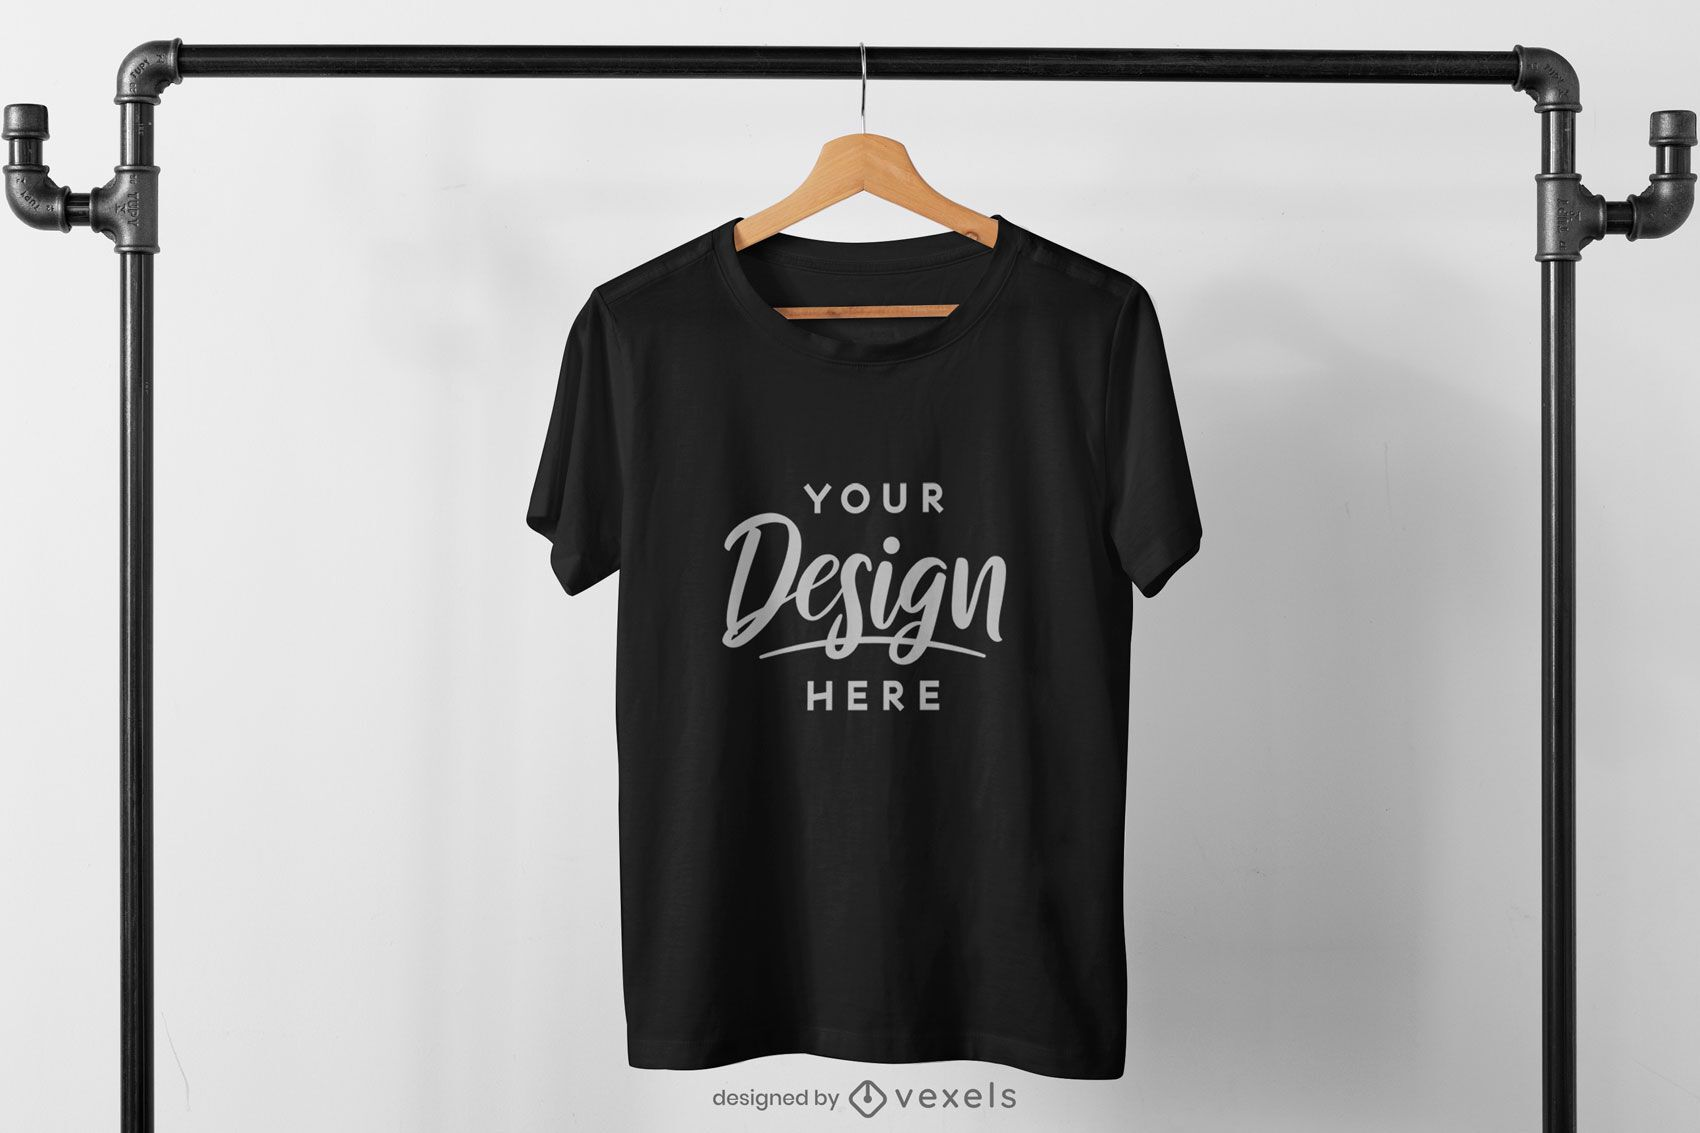 T-shirt hanging from pipes mockup design